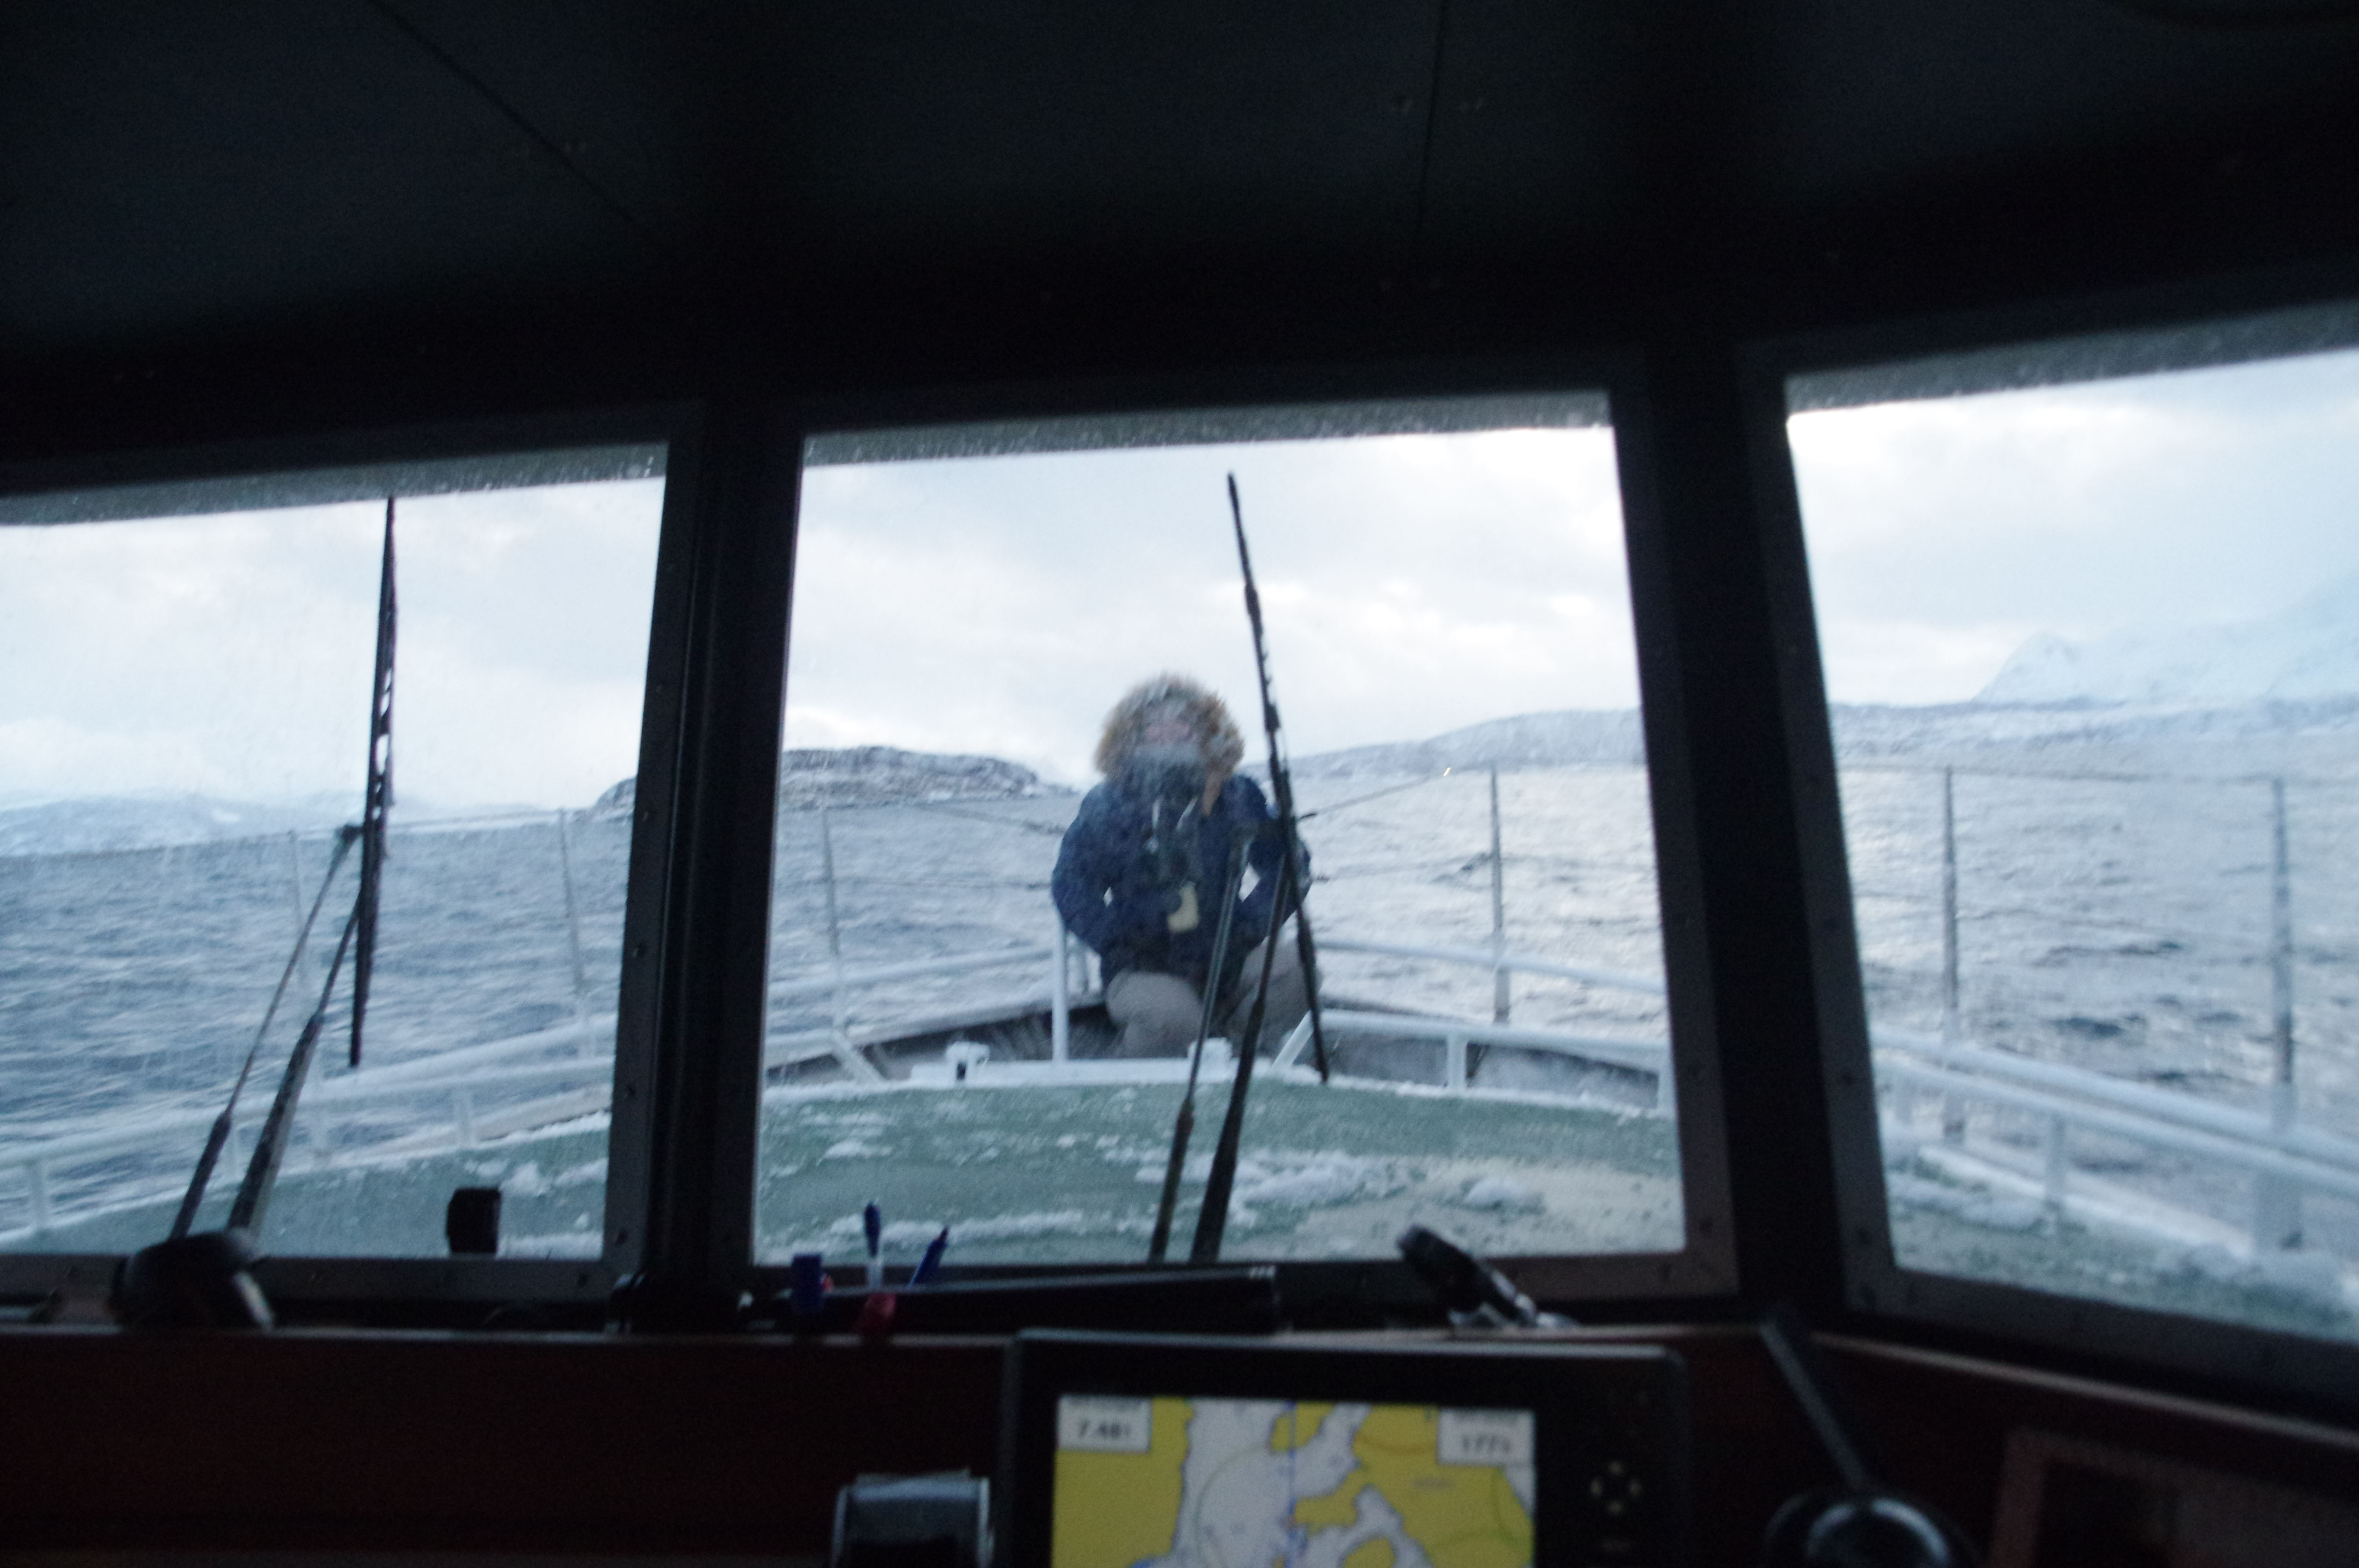 Whale Watching trip with MS Senjafjell – Solbø Maritime Adventure